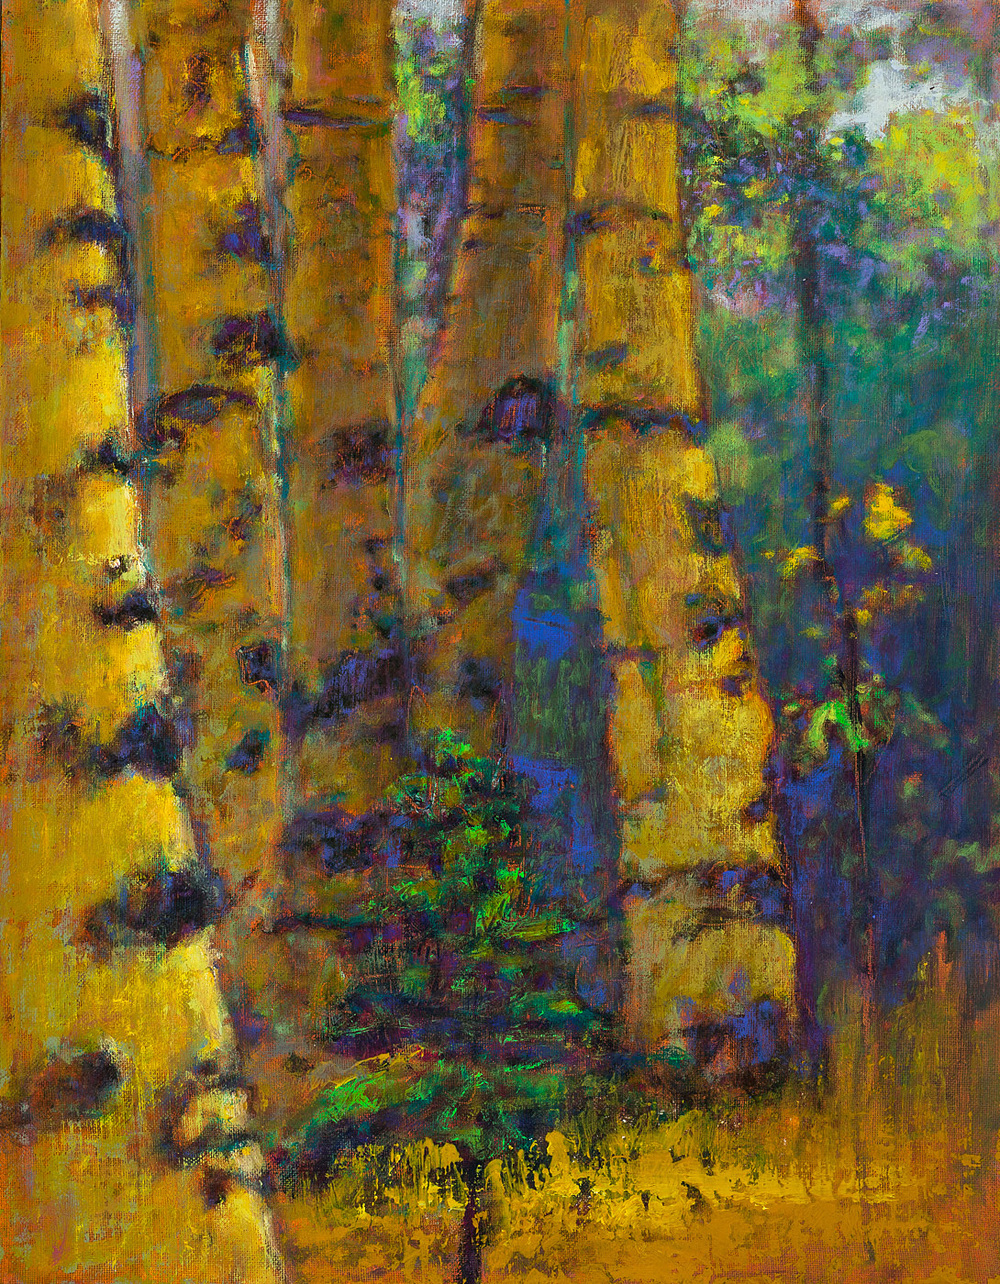 Procession | oil on linen | 18 x 14"